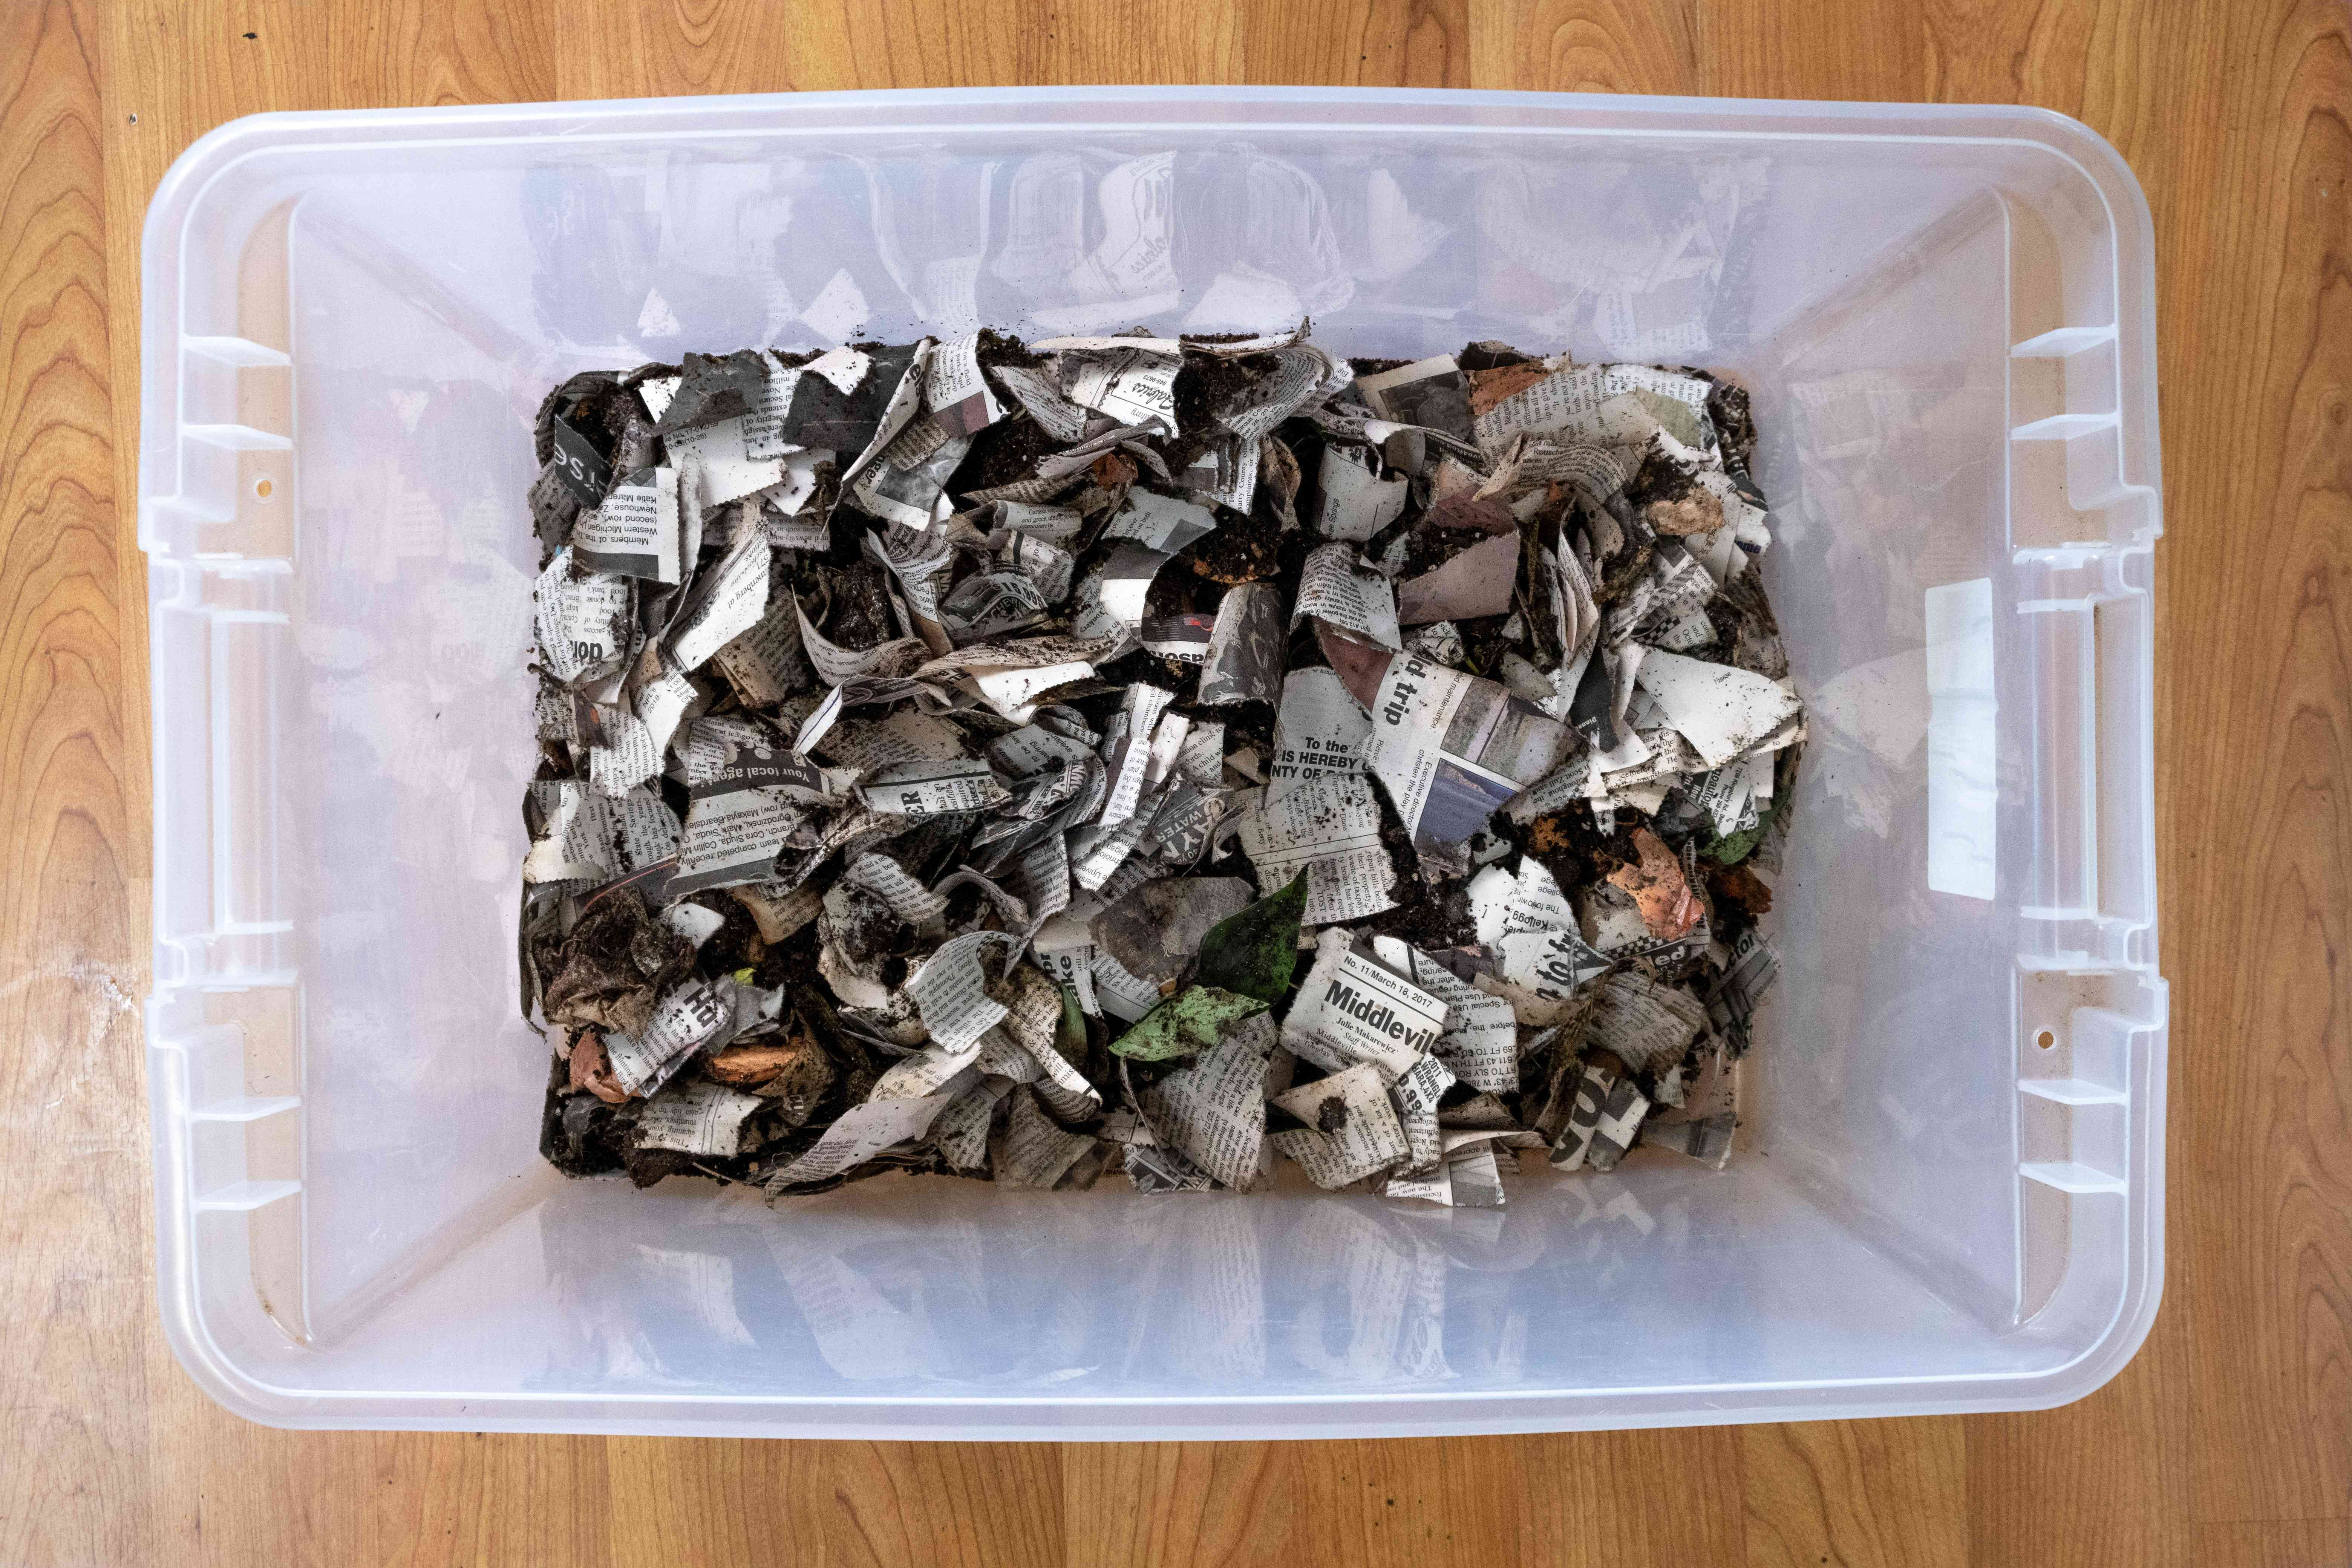 overhead view of plastic bin filled with wet newspaper